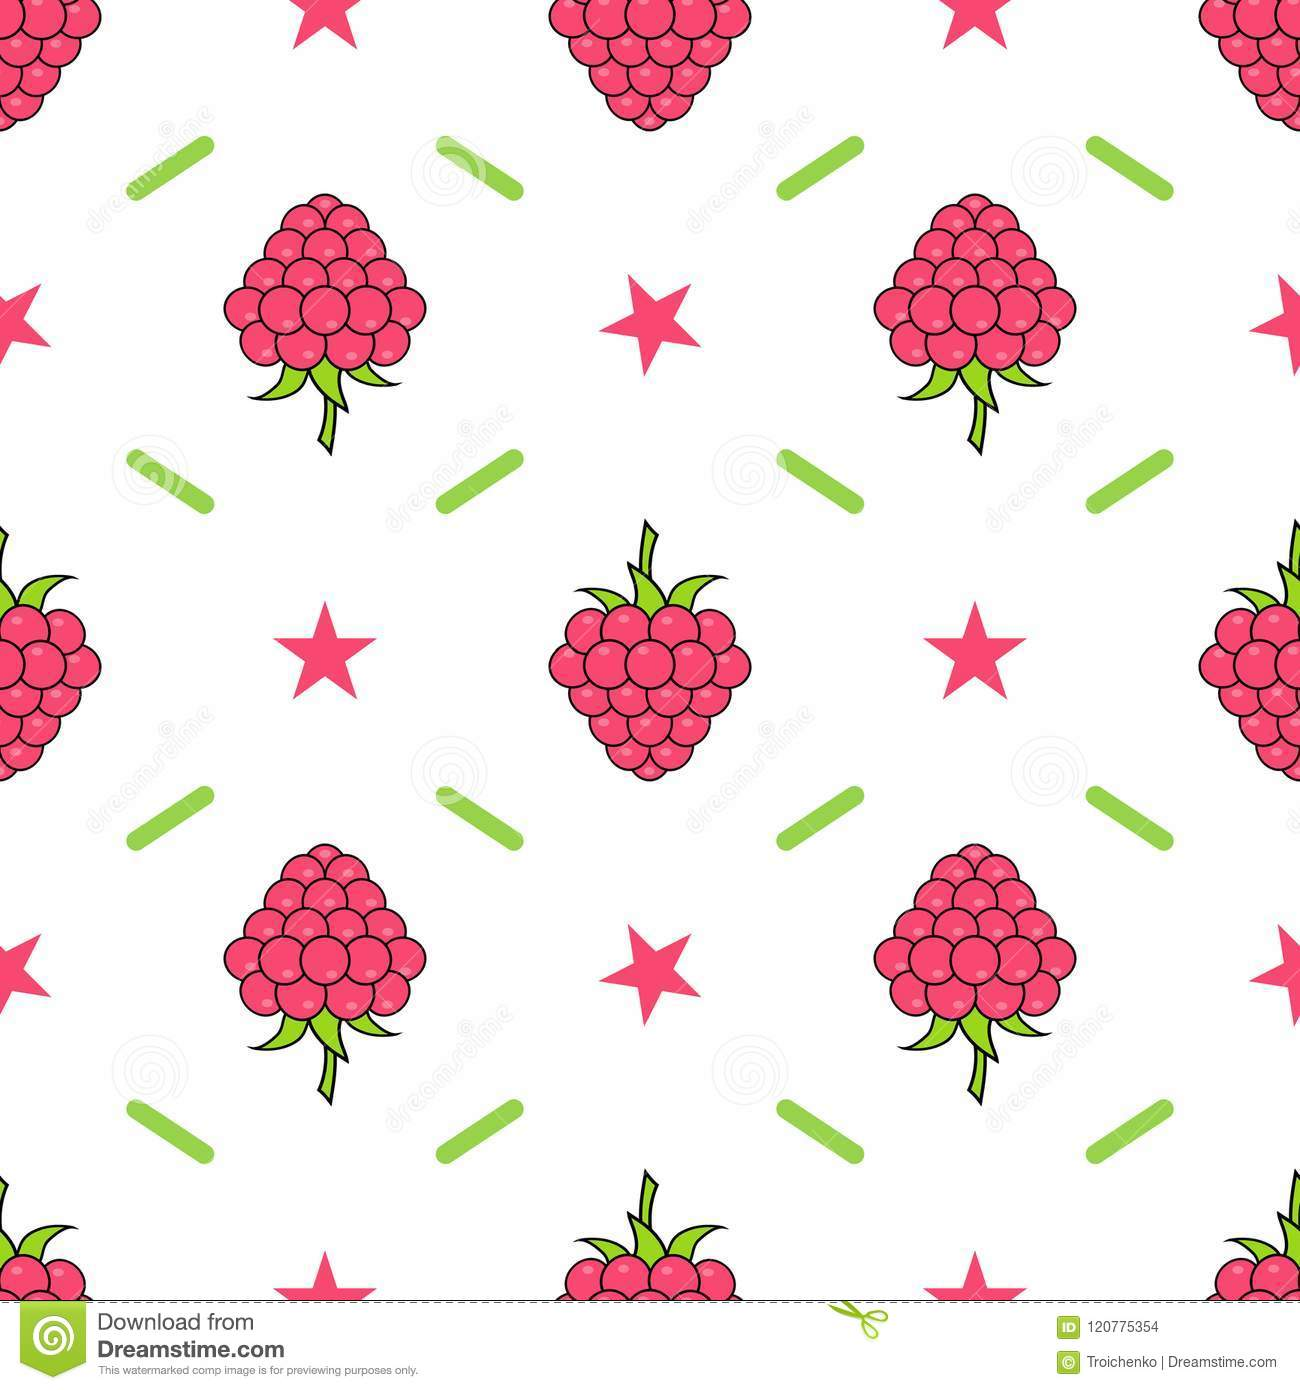 Raspberries Seamless Pattern For Kitchen Textile Wrapping Paper